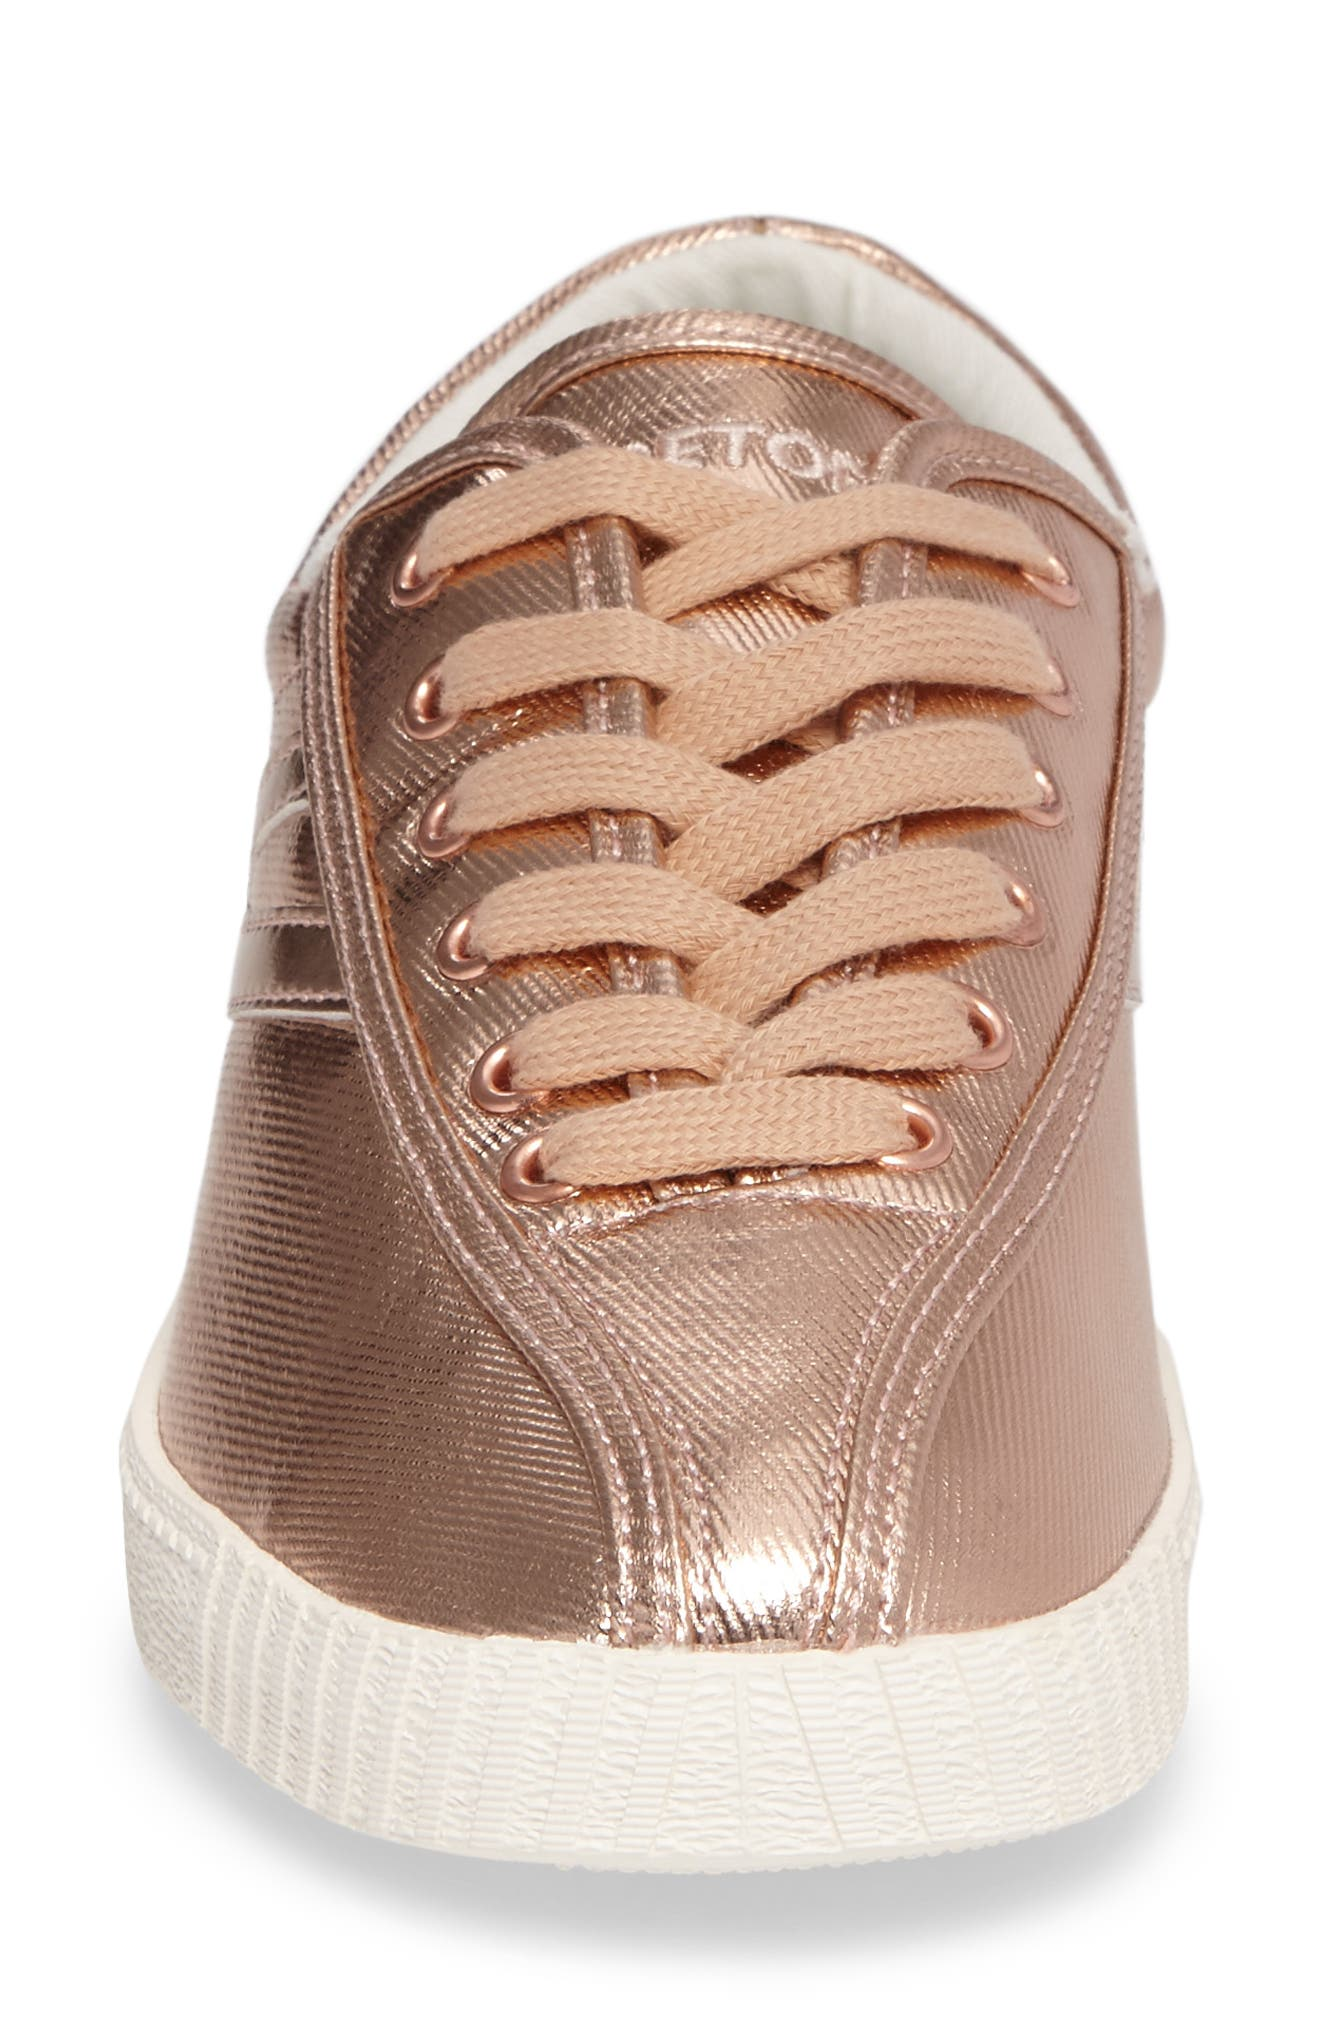 Nylite Plus Sneaker,                             Alternate thumbnail 4, color,                             Rose Gold/ Rose Gold